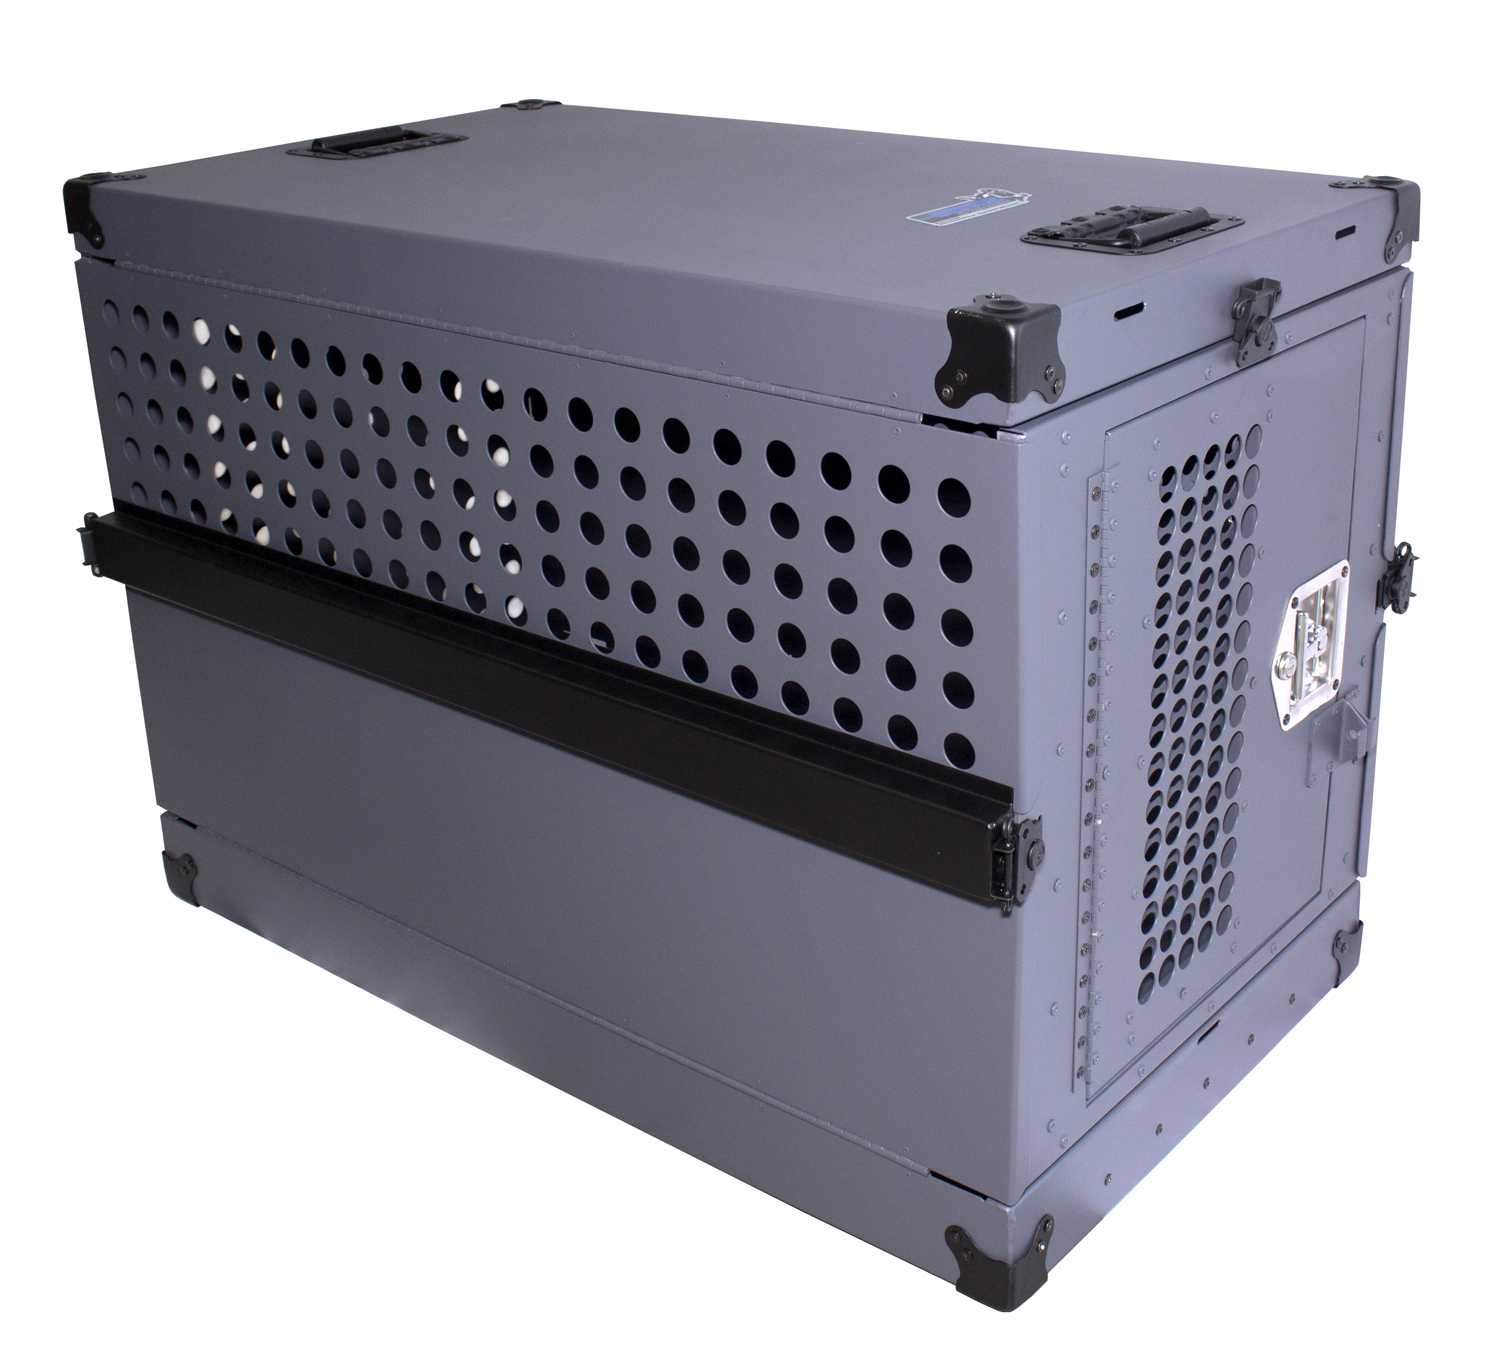 collapsible dog crate heavy duty k9 box collapsible - Collapsible Dog Crate